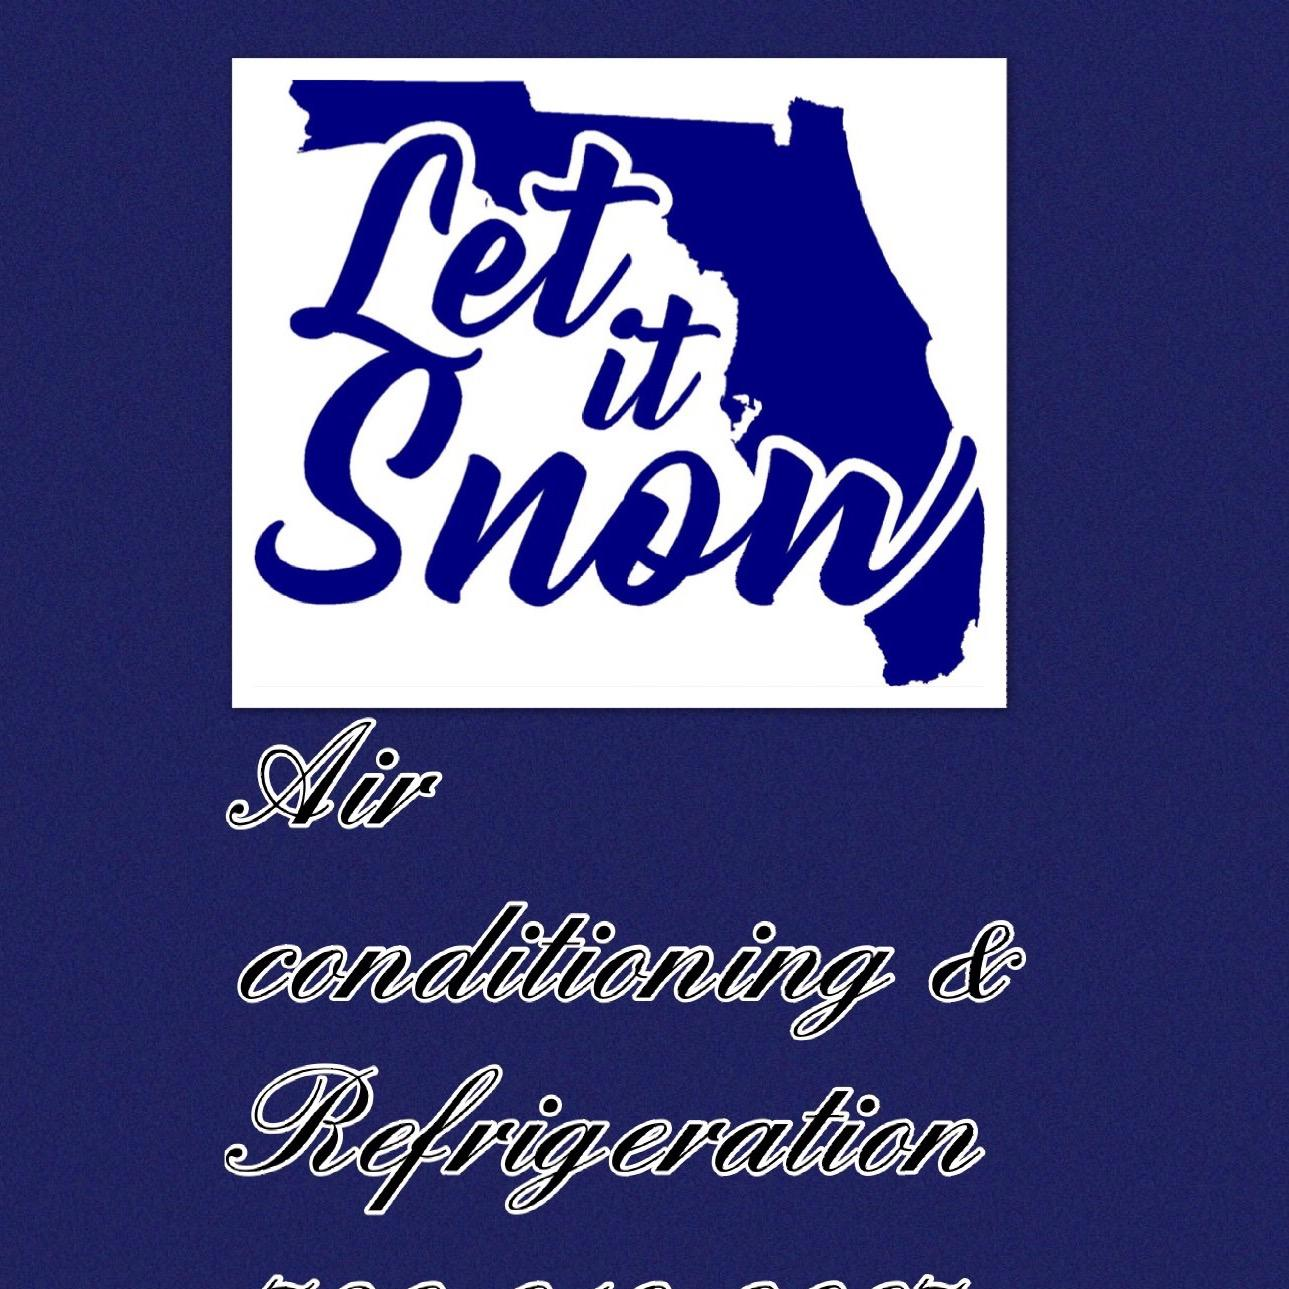 LET IT SNOW FLORIDA INC image 5